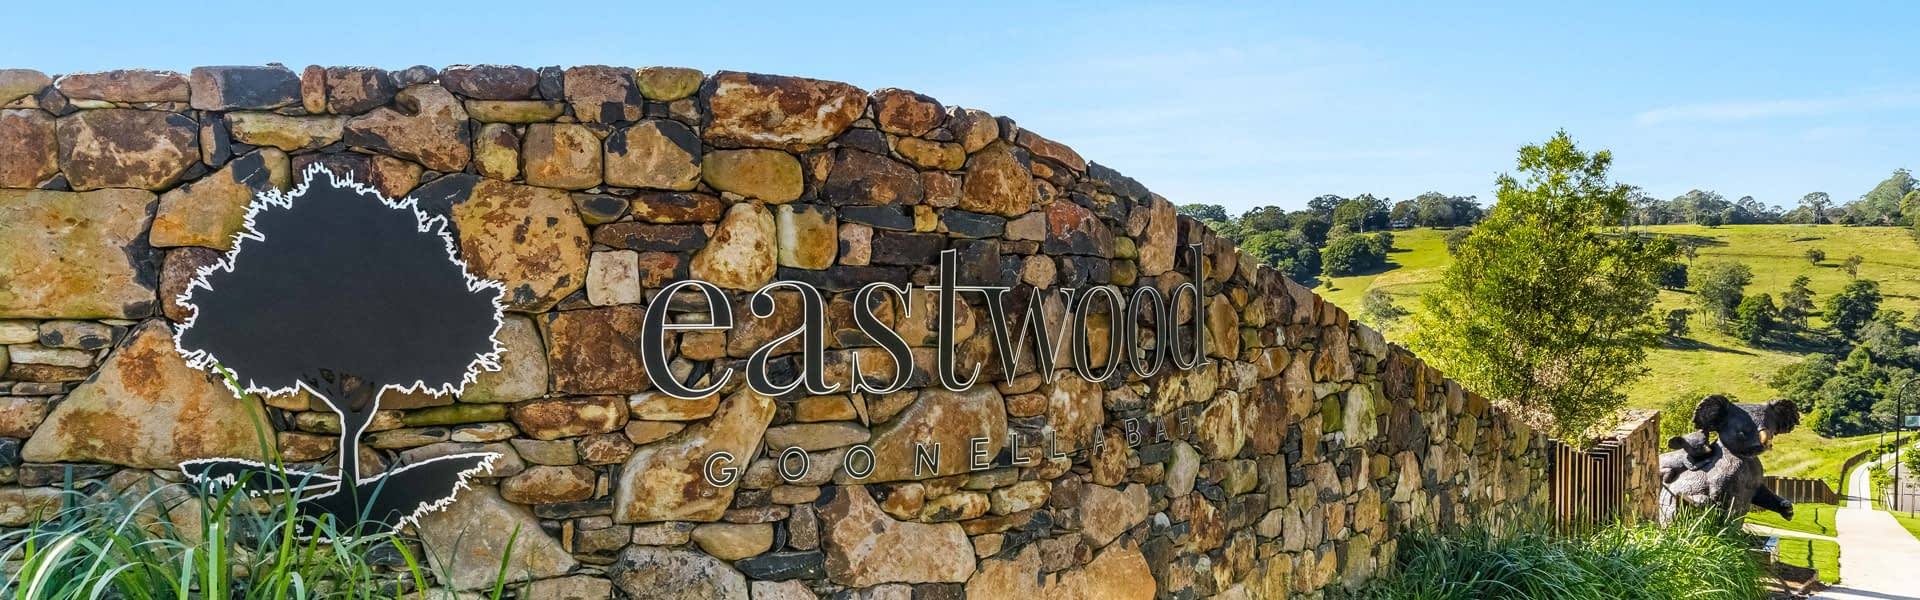 Residential Estate Eastwood Goonellabah Lismore